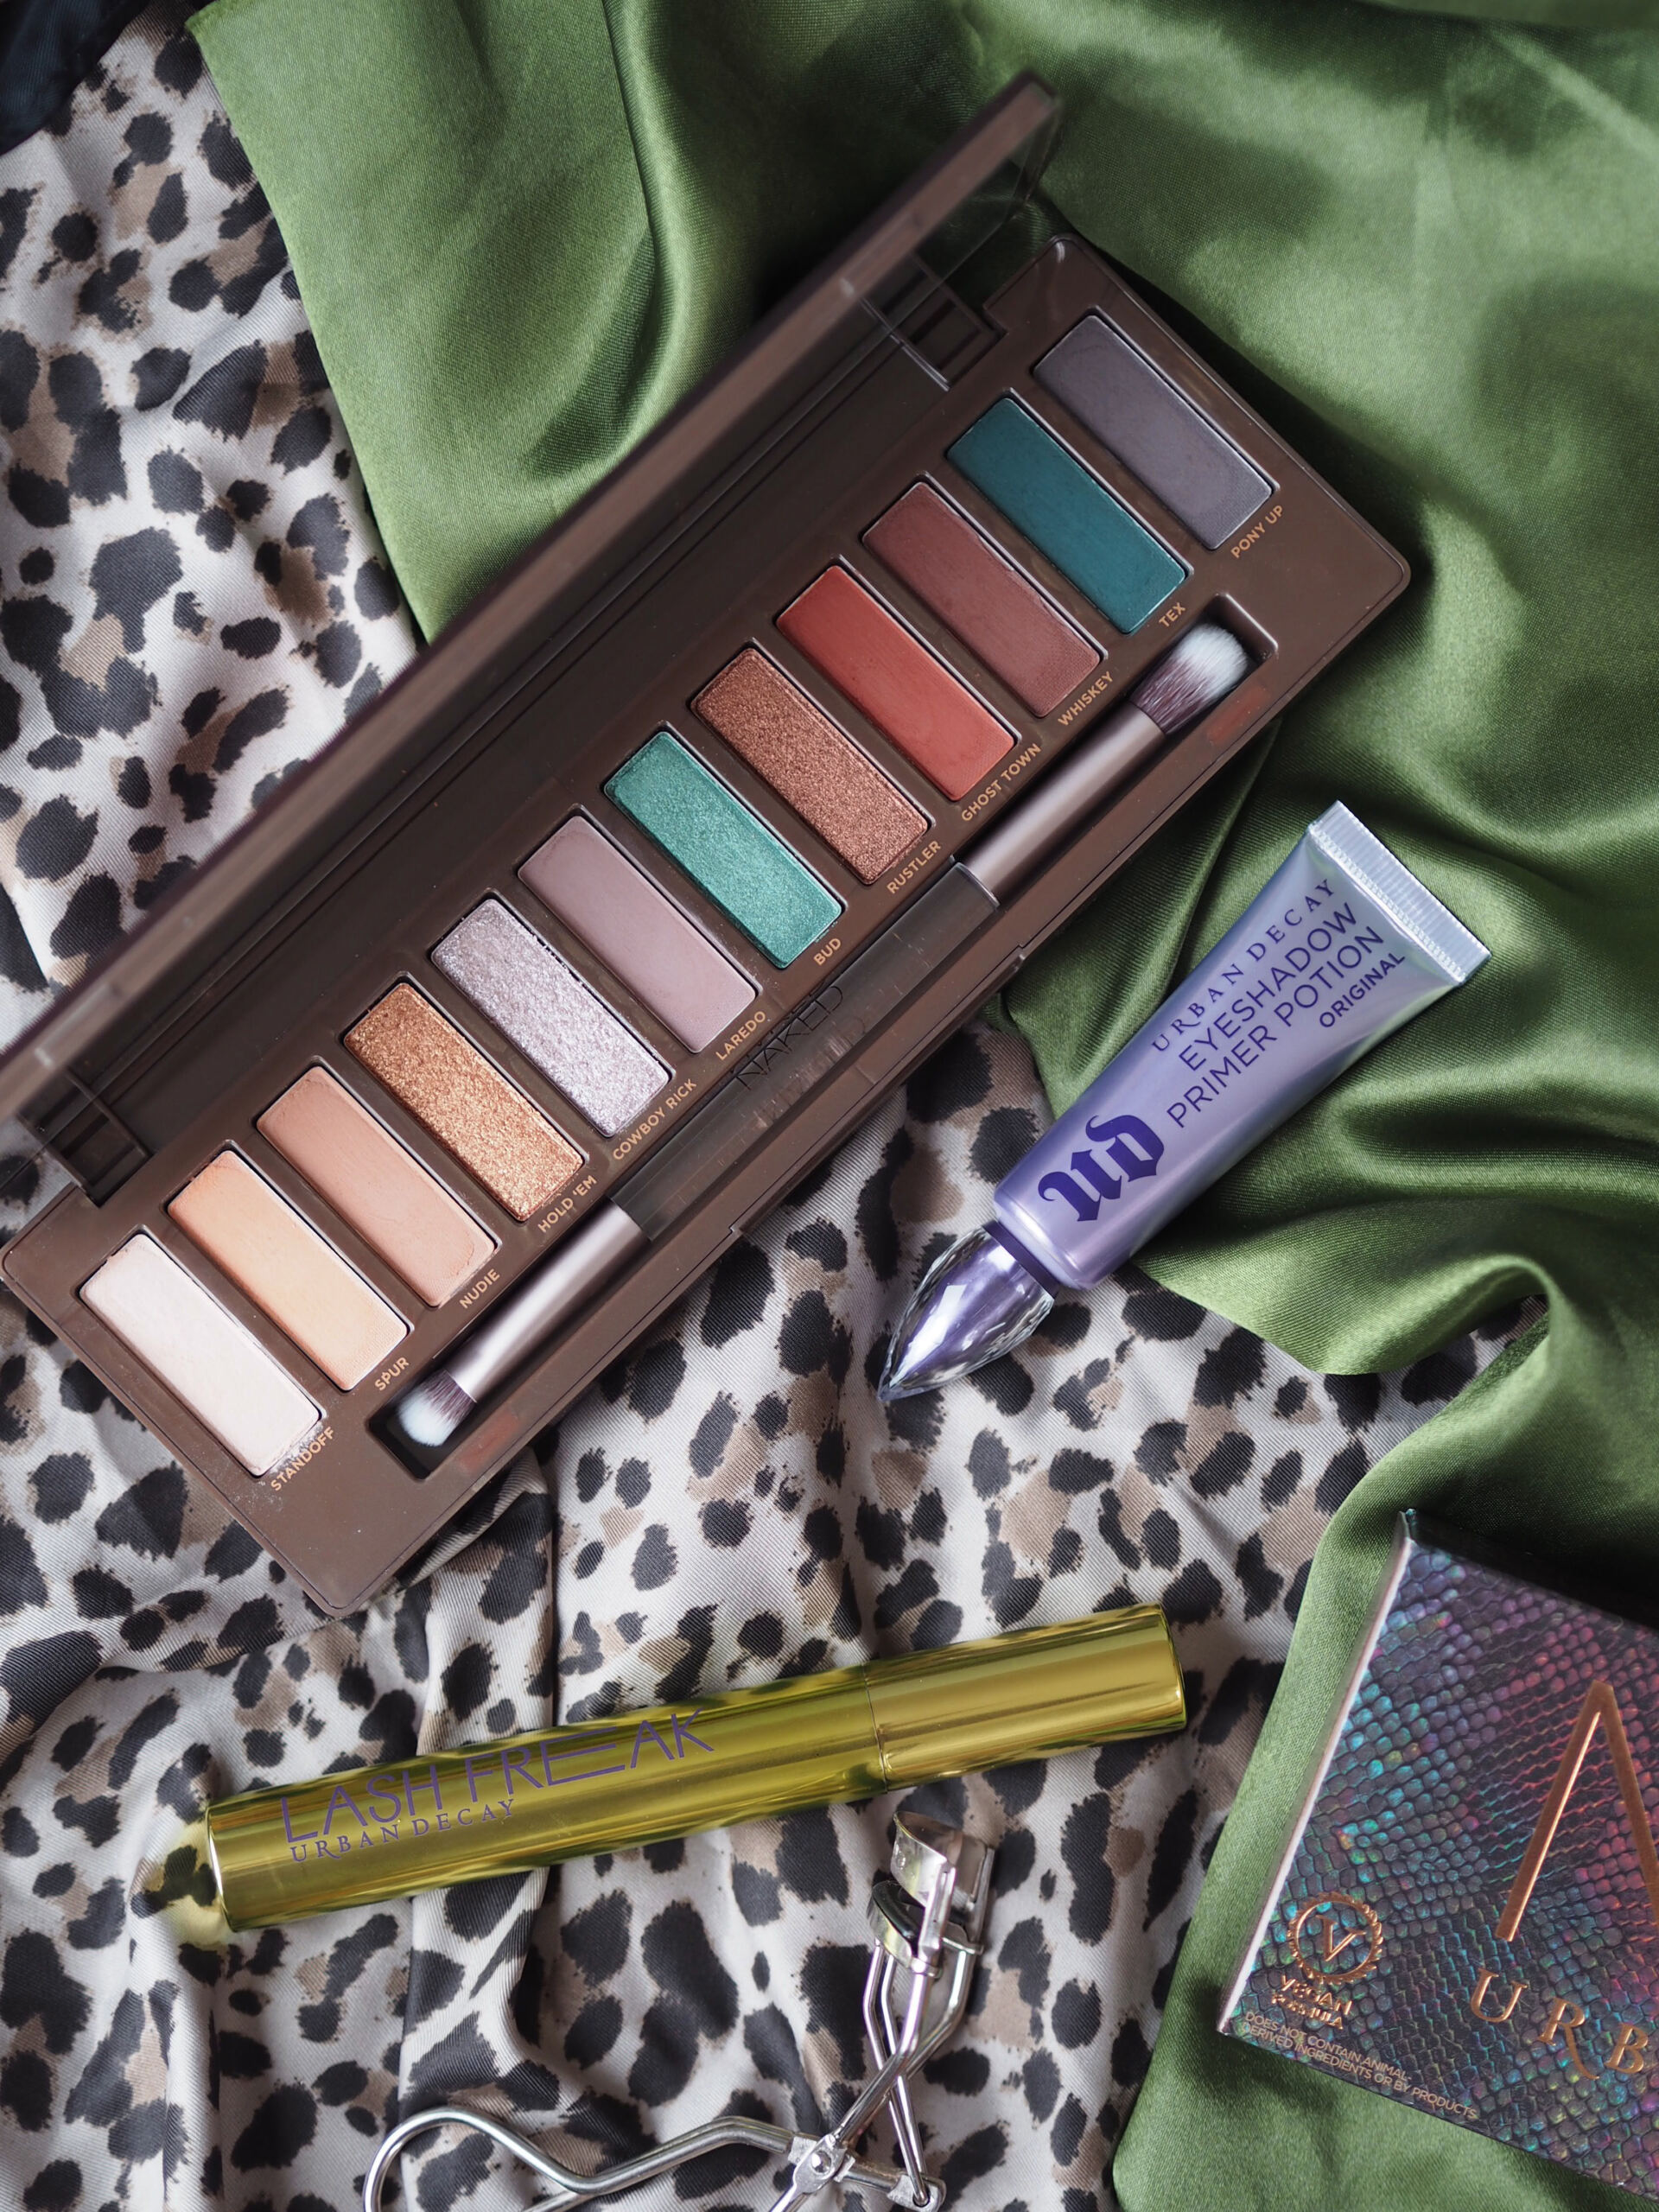 Urban Decay Naked Ultimate Basics Eyeshadow Palette Review